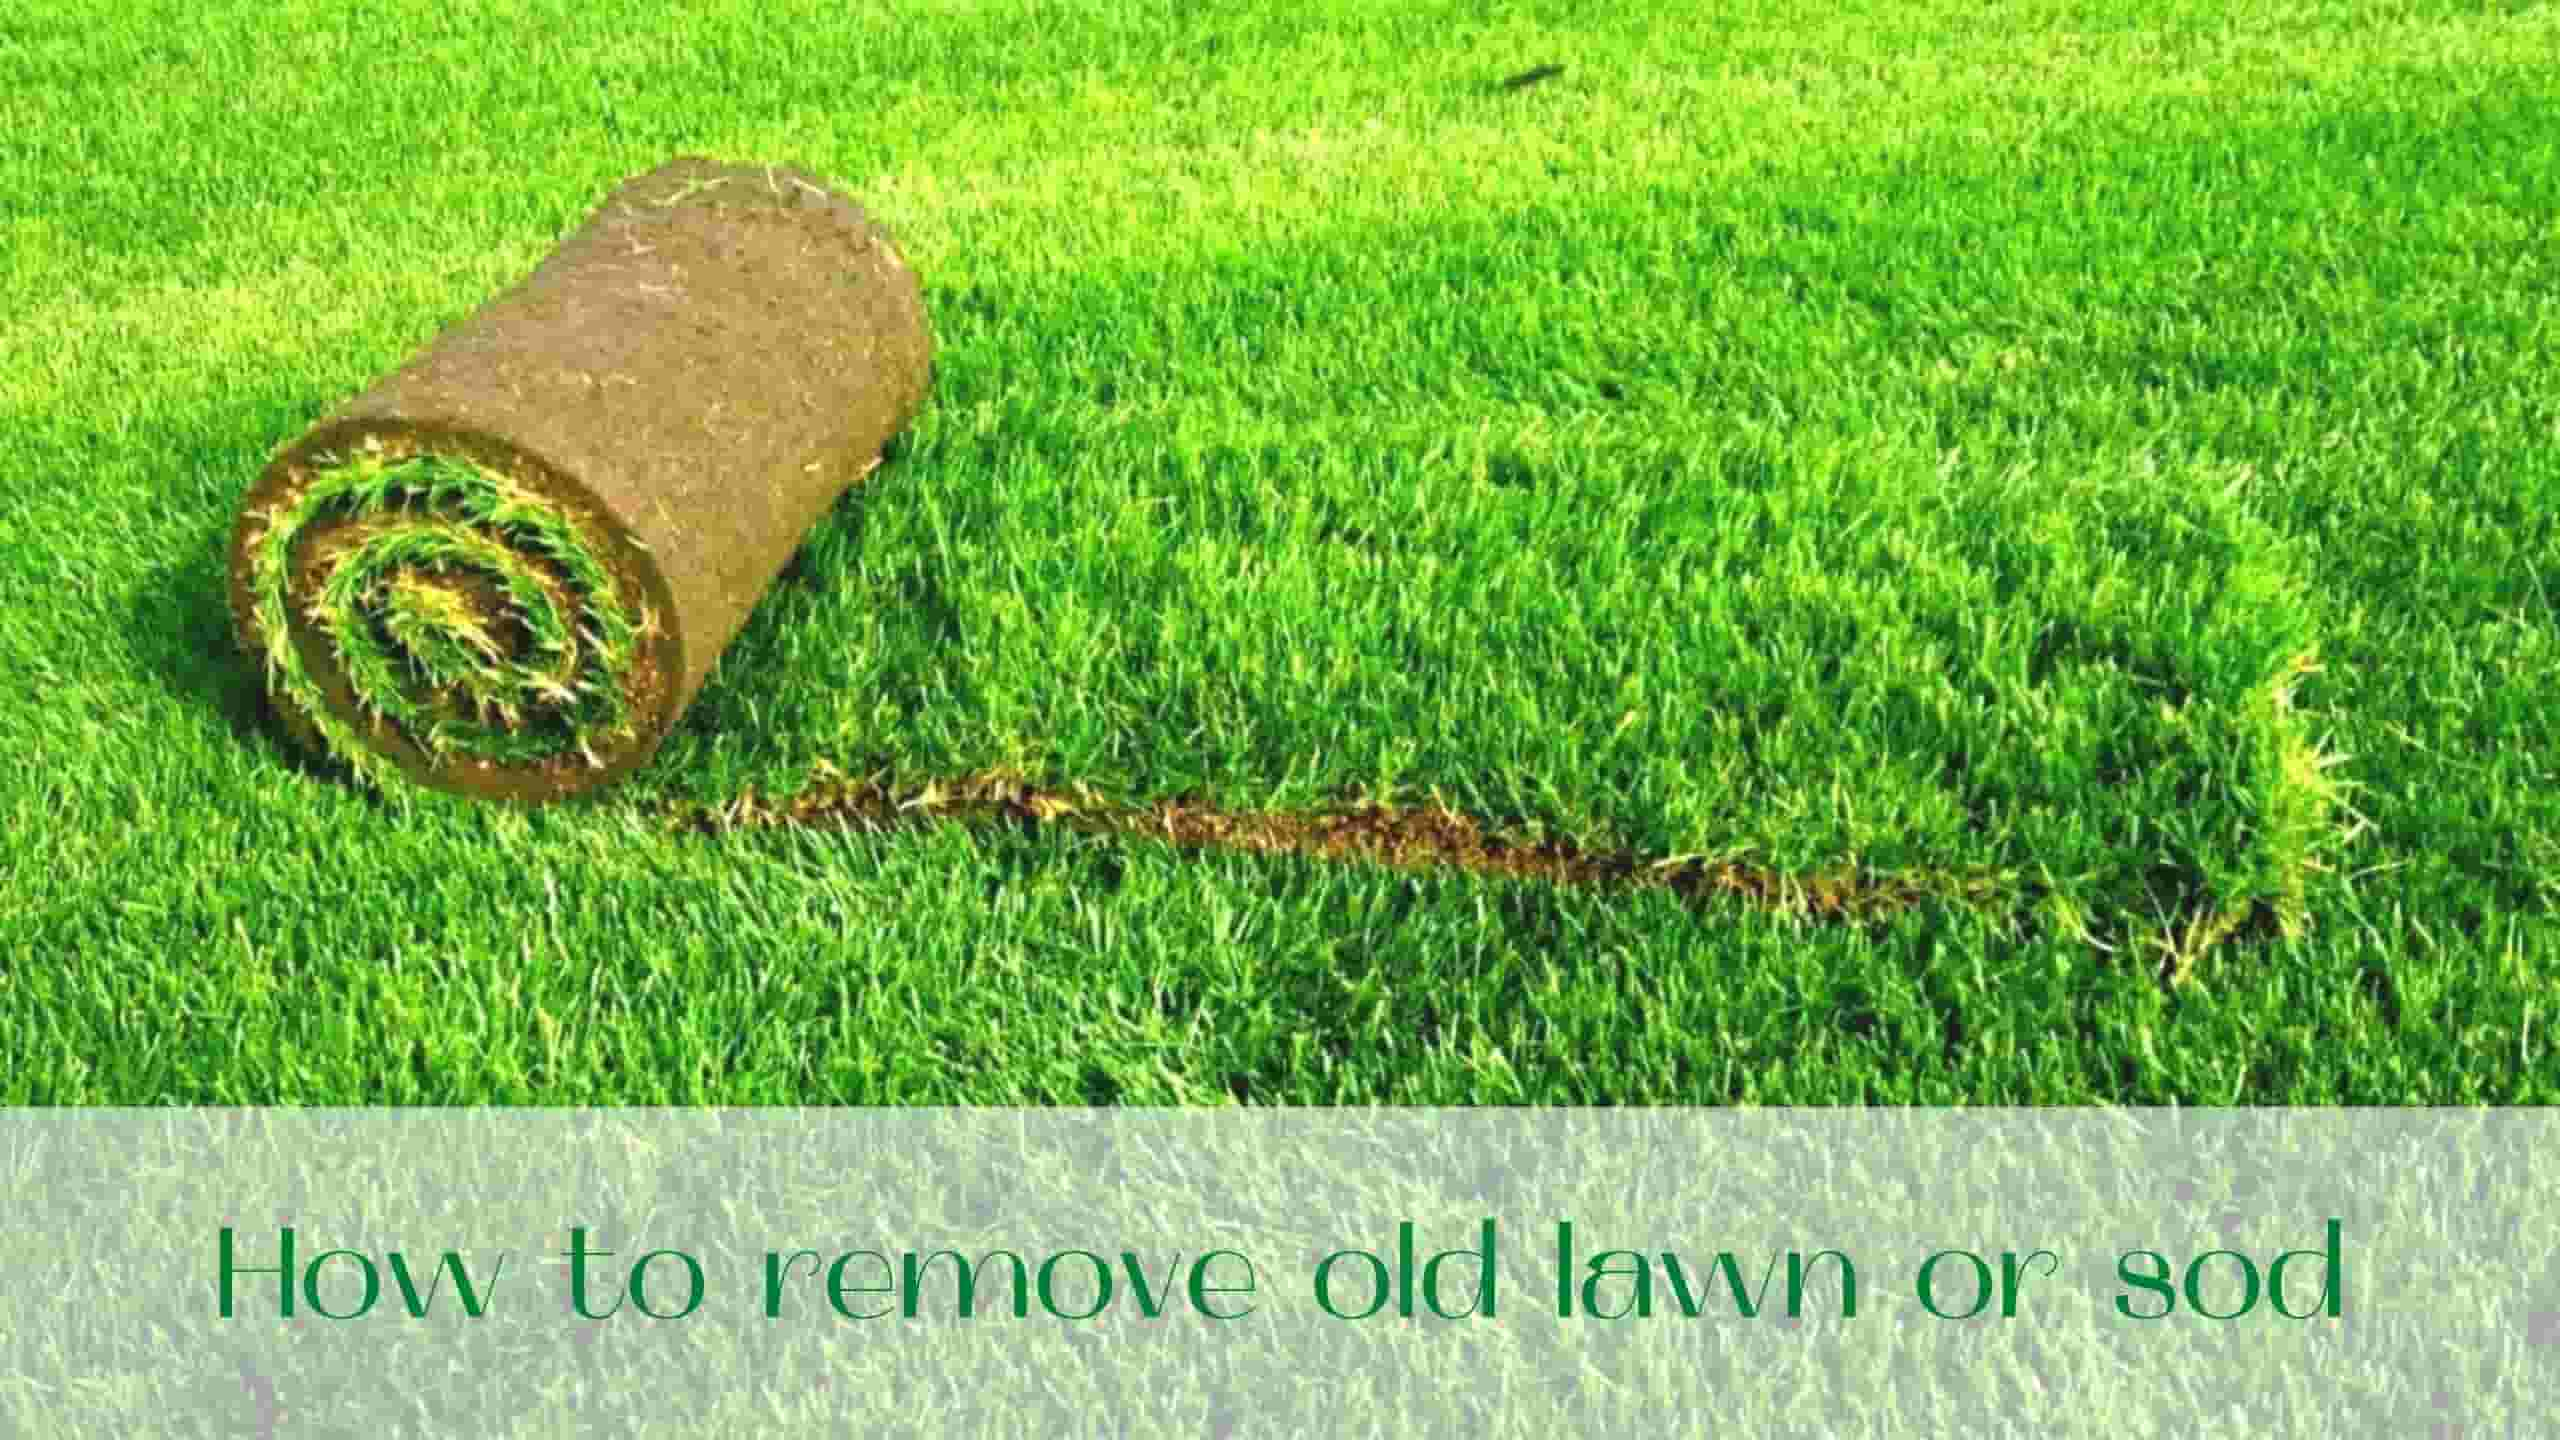 image-How-to-remove-old-lawn-or-sod